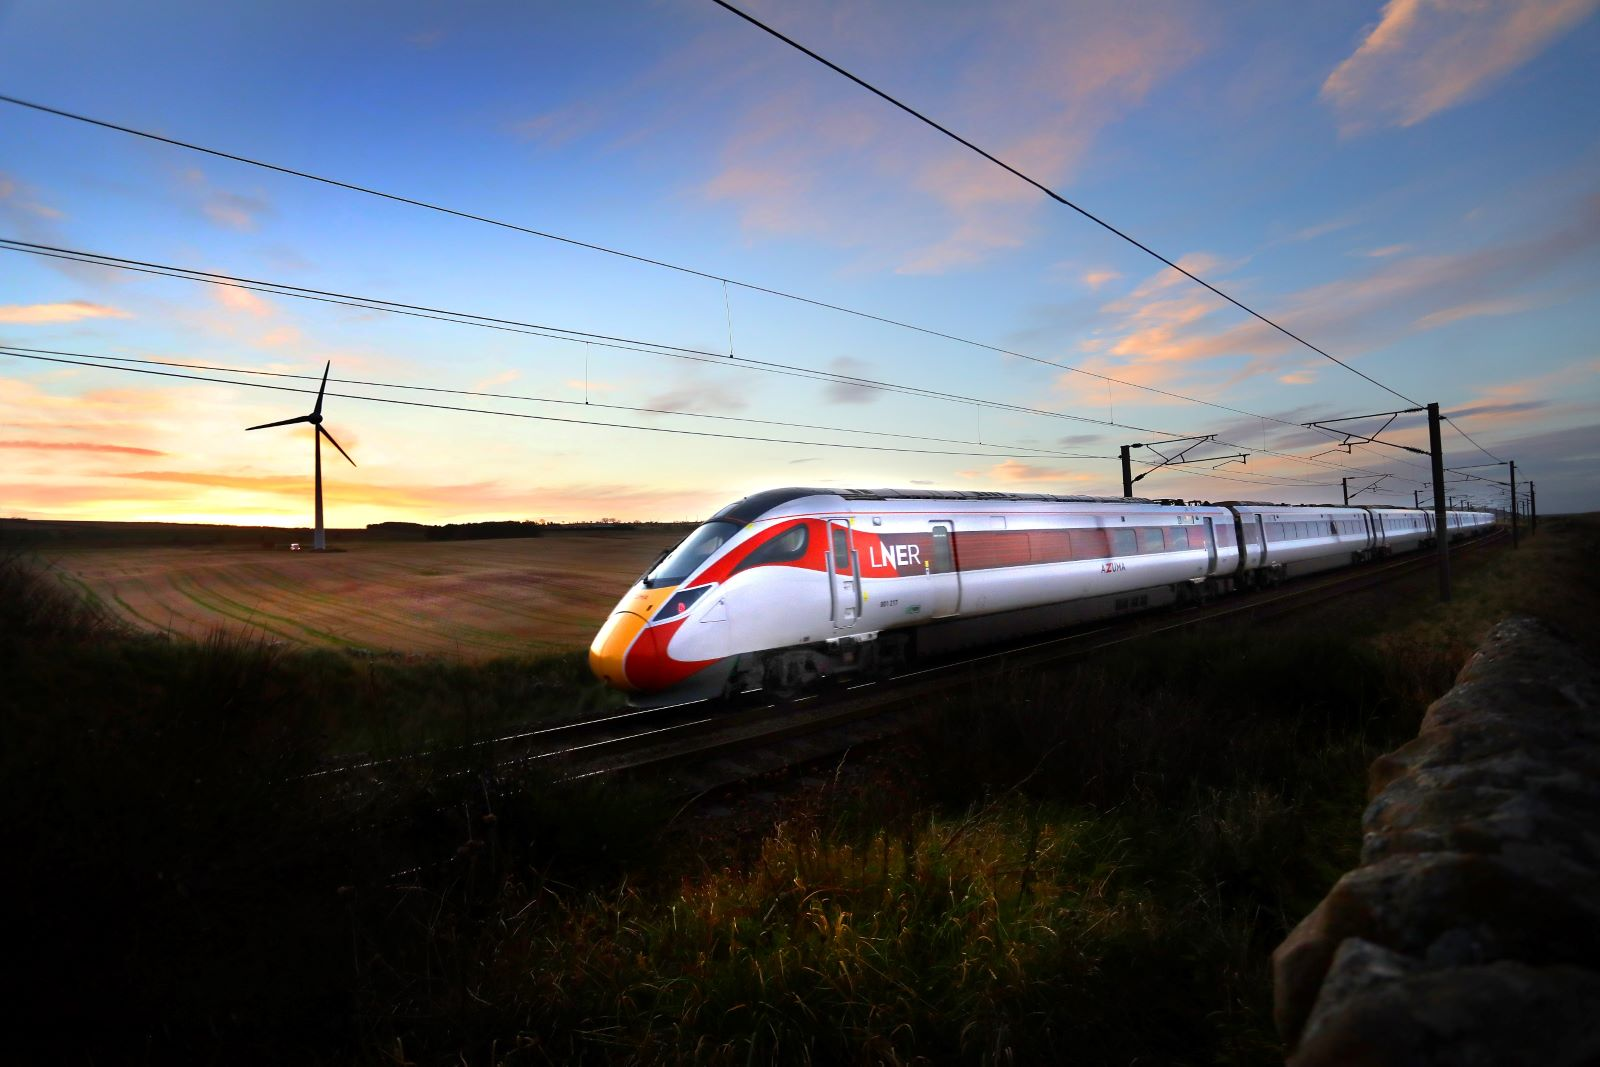 Eco-Friendly Rail Travel Focus For Inspiring New Poster Competition